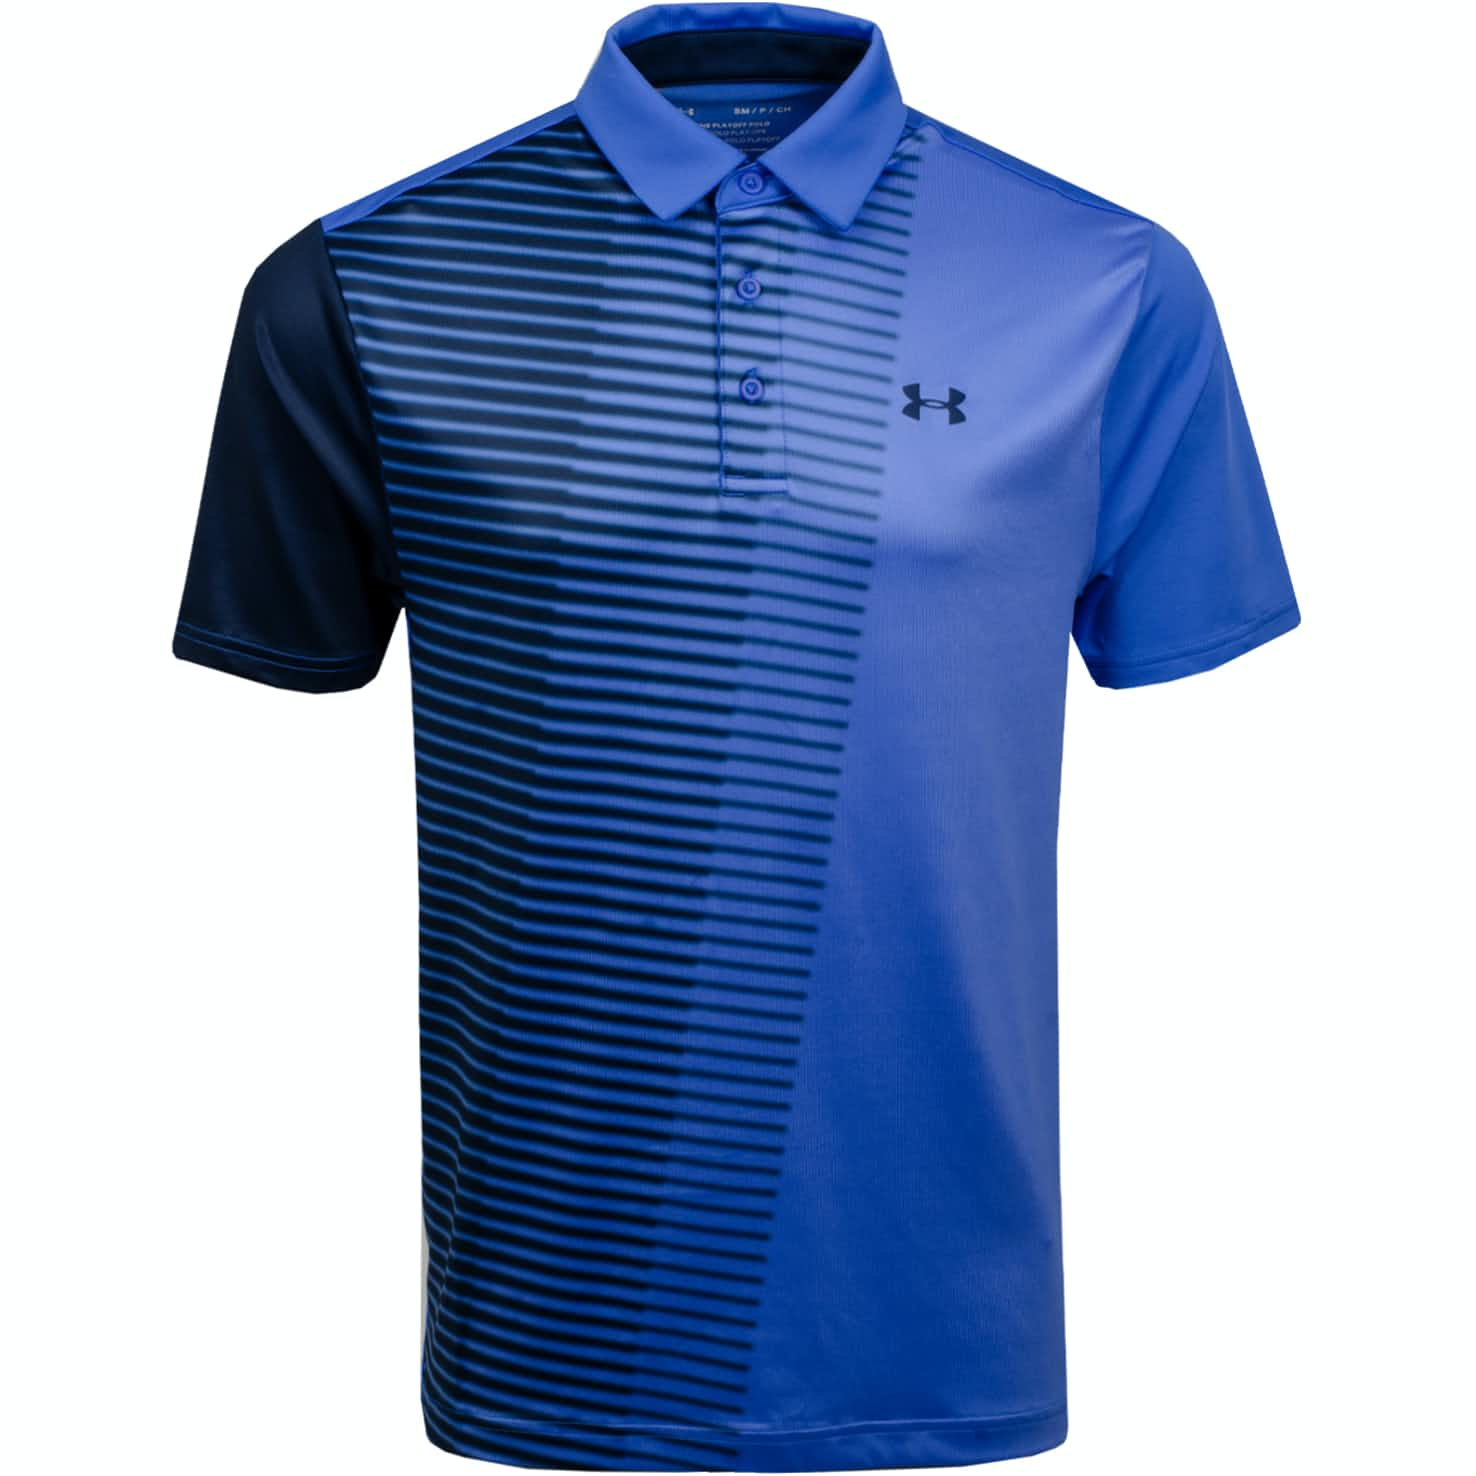 Playoff Polo 2.0 Tempest/Academy - AW19